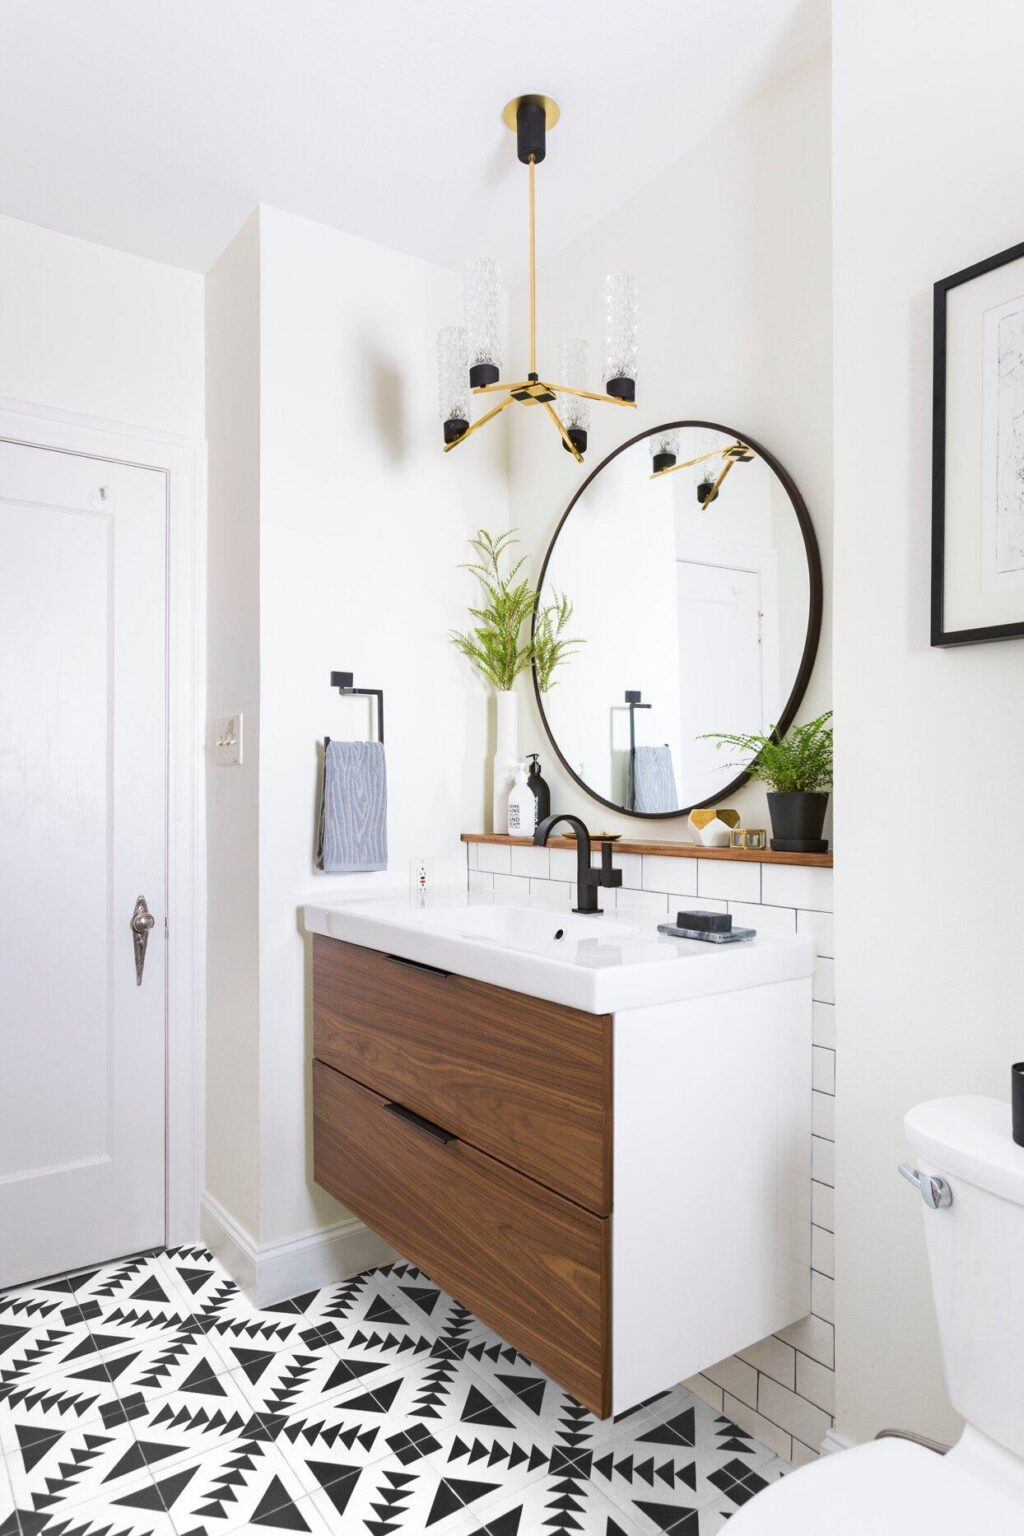 How to Clean Bathroom Countertops and Keep Them Sparkling